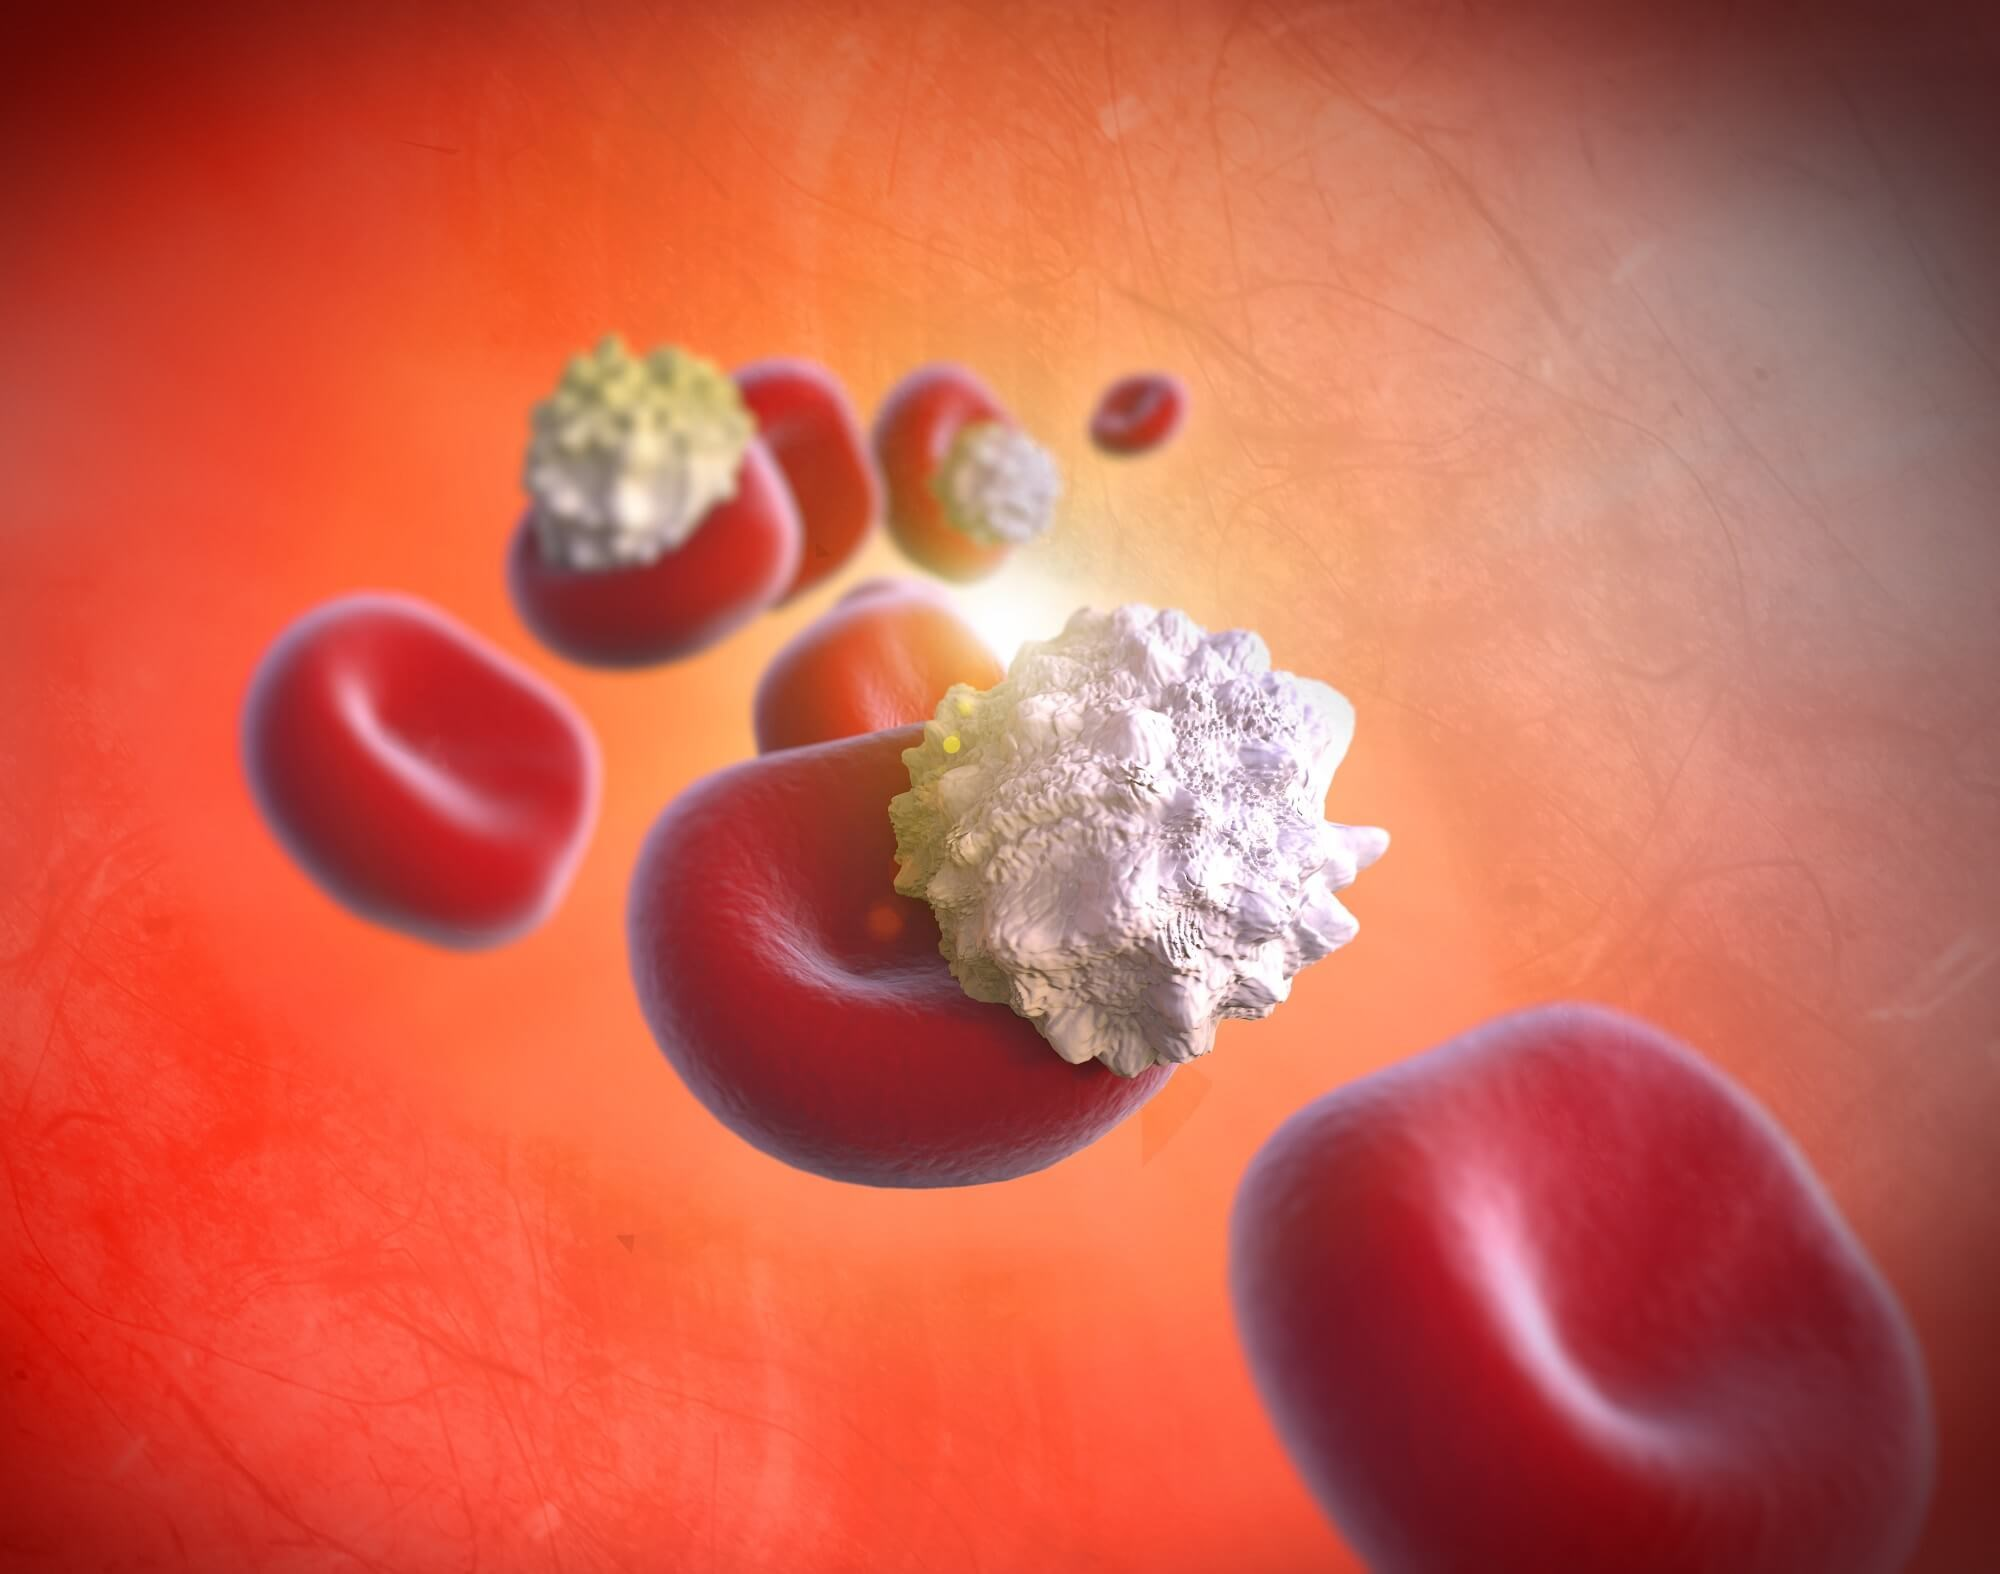 Alirocumab Well Tolerated and Effective in Patients With Statin Intolerance